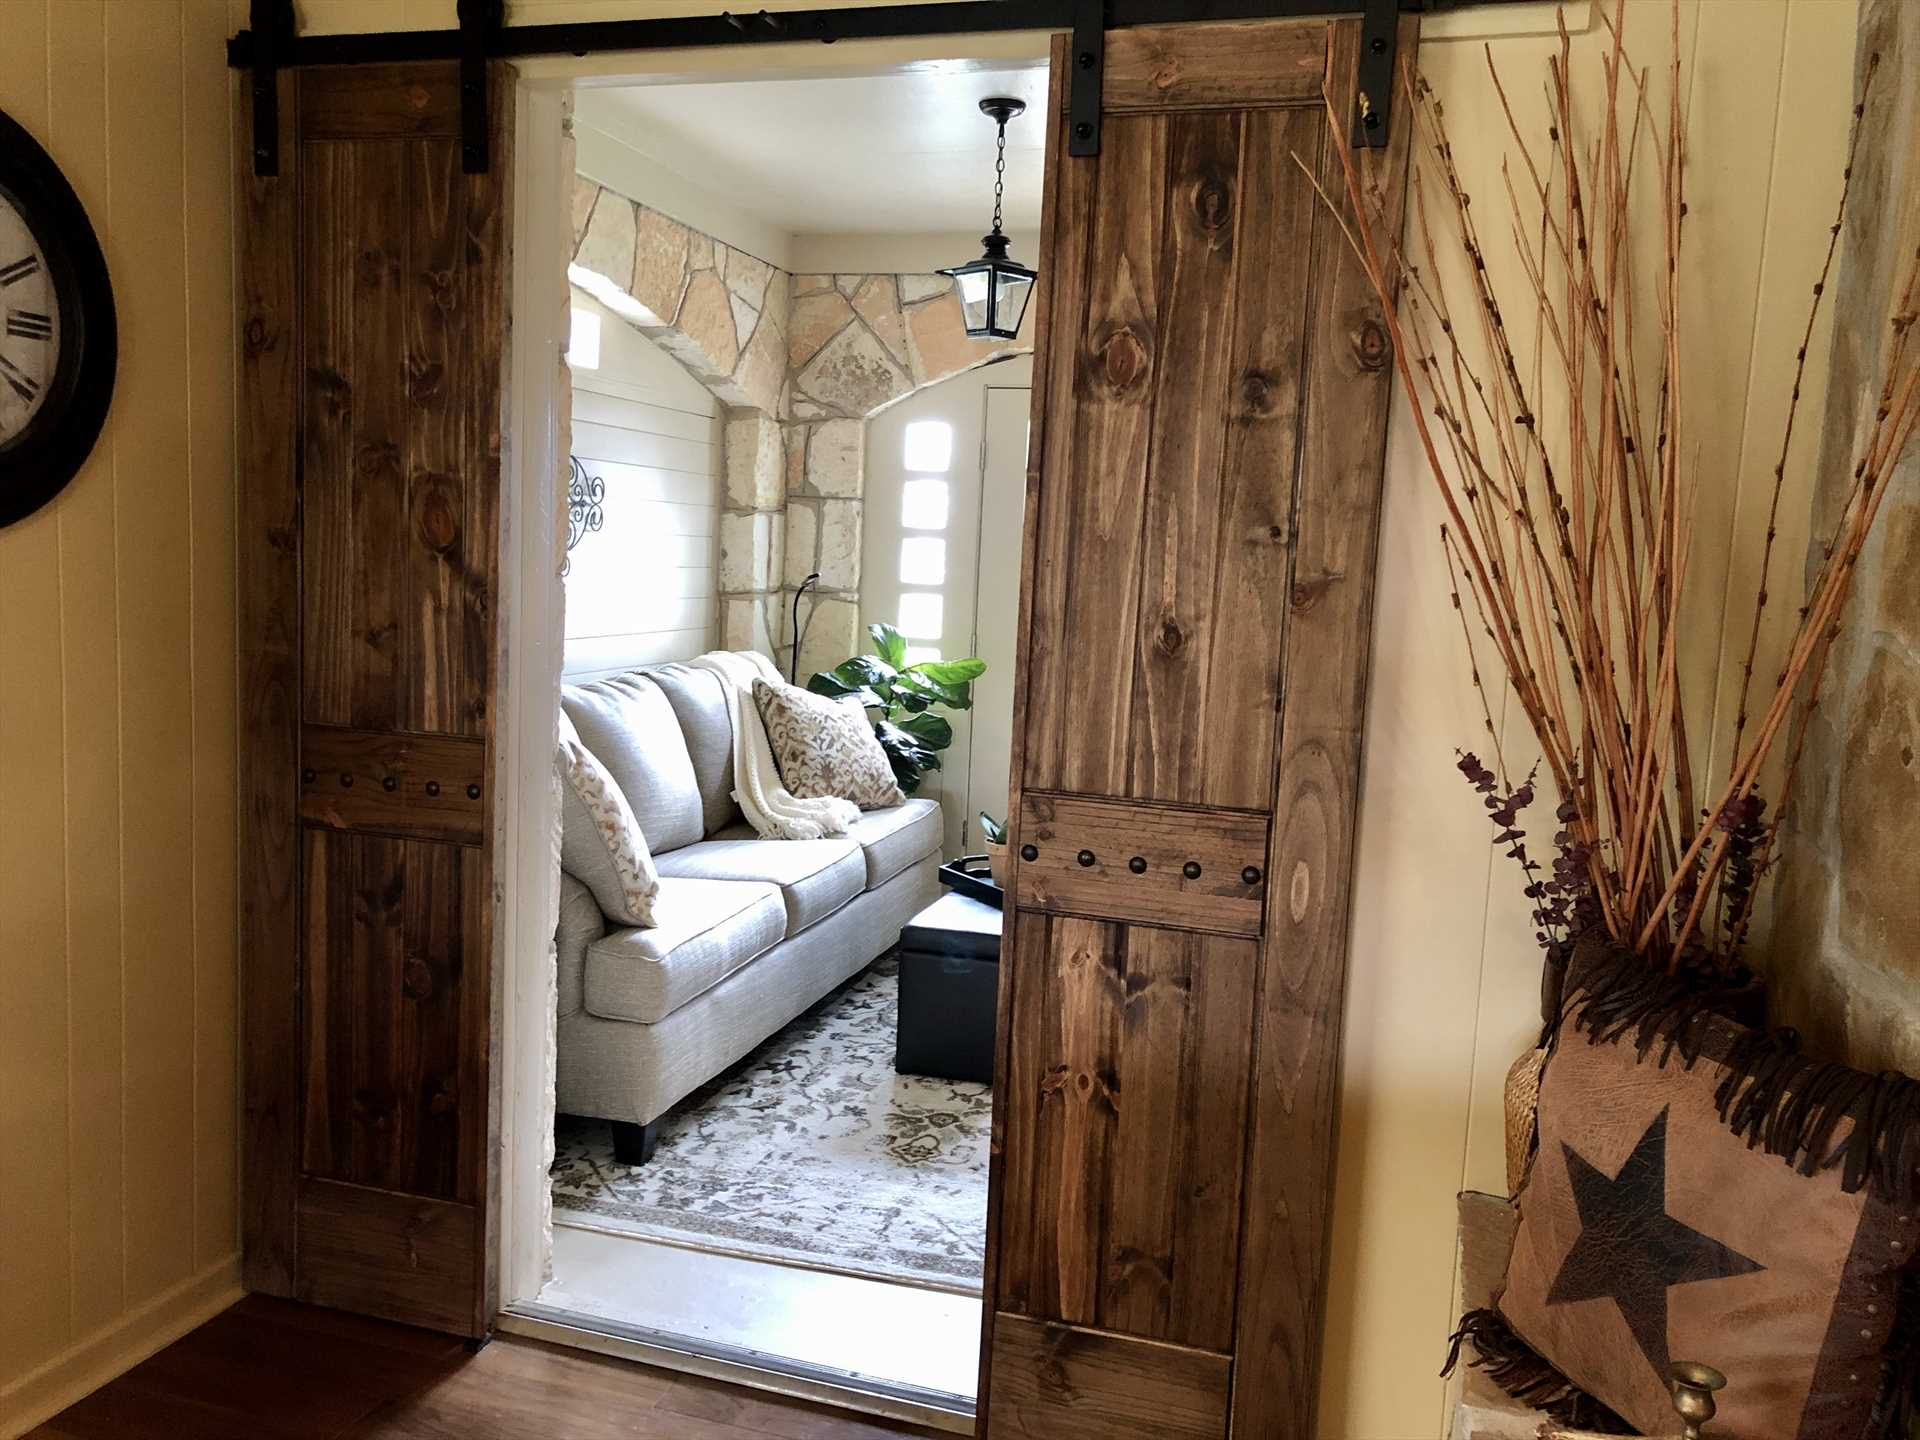 The barn door access to the foyer is just one of the homey touches that gives the guest house a personality all its own.